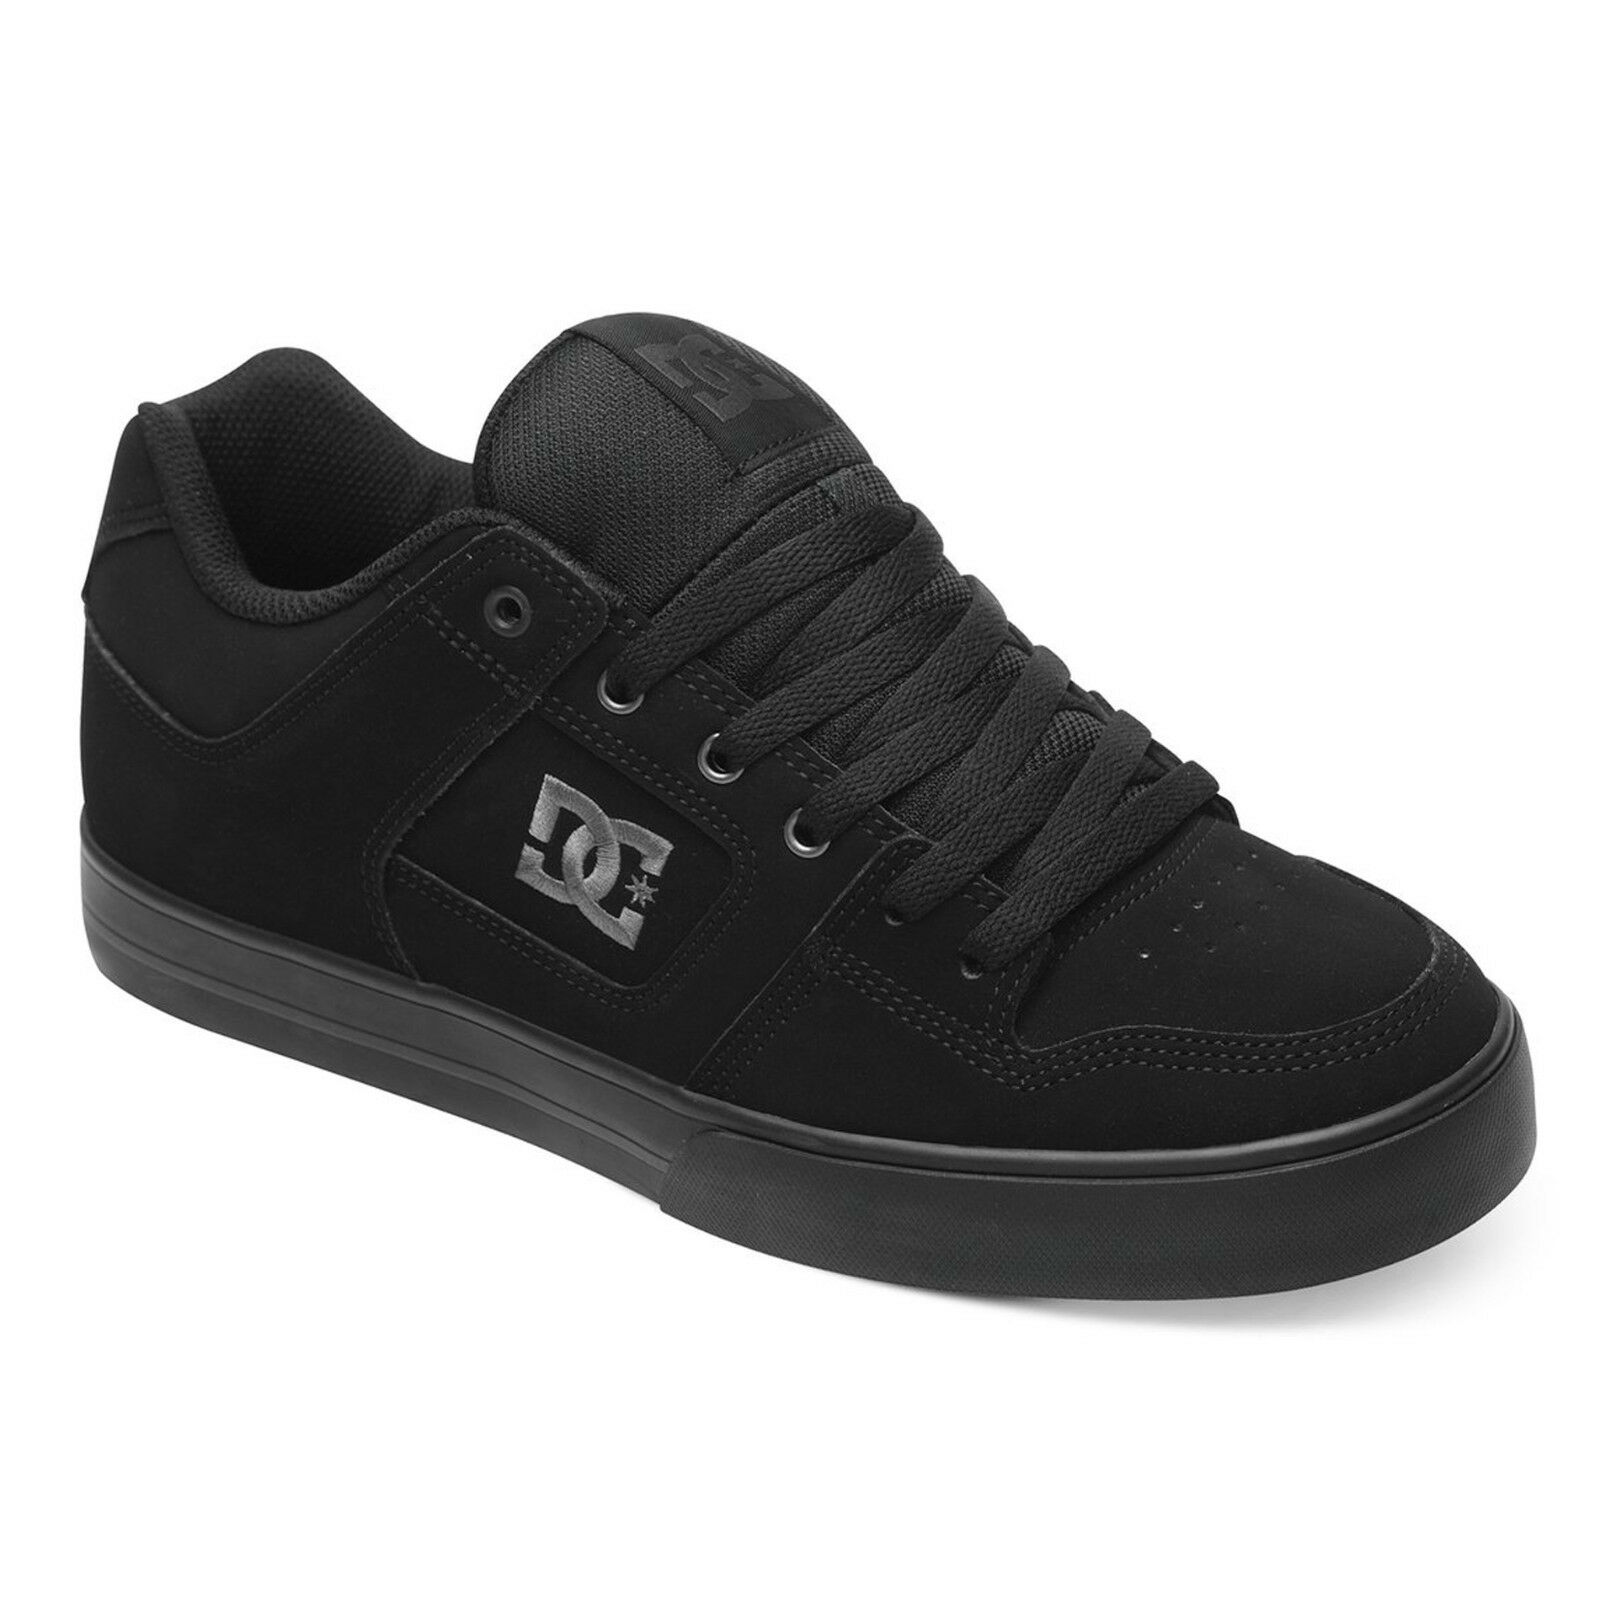 DC - Pure BLACK/PIRATE BLACK (lpb) Low Top Schuhe Skateschuh Sneaker DC Shoes